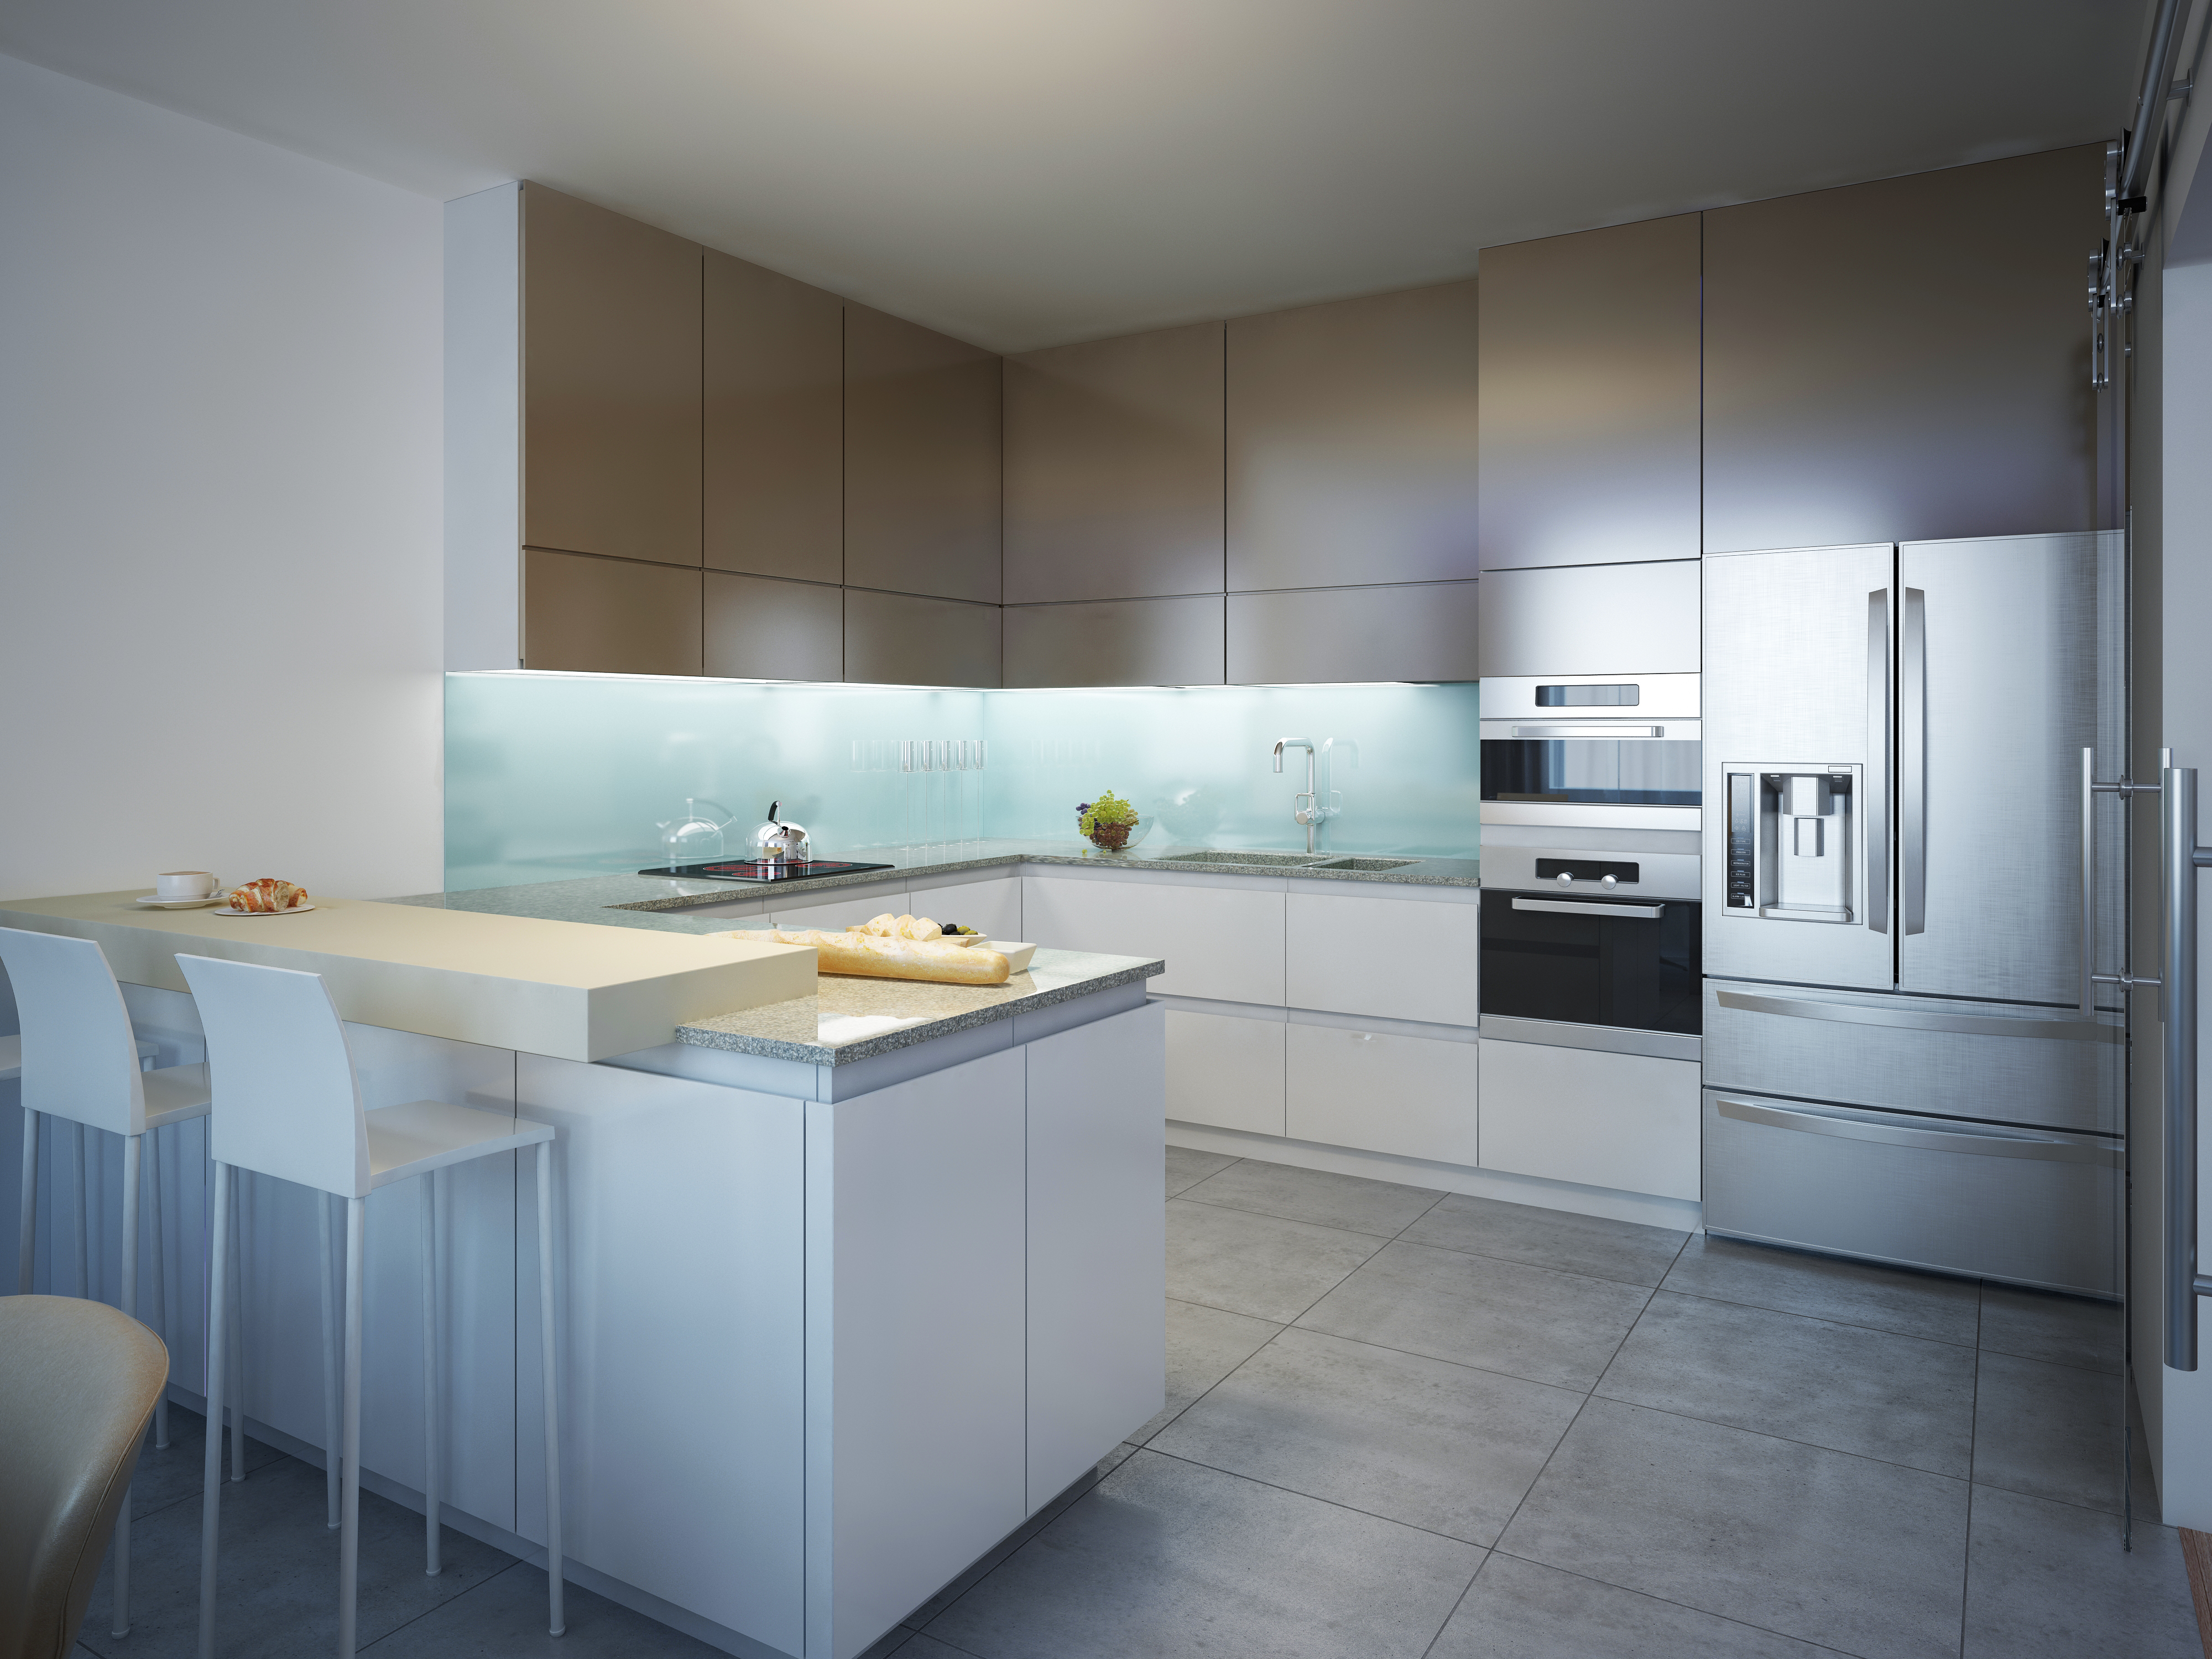 How to Choose the Best Kitchen Layout | Fabuwood Blog